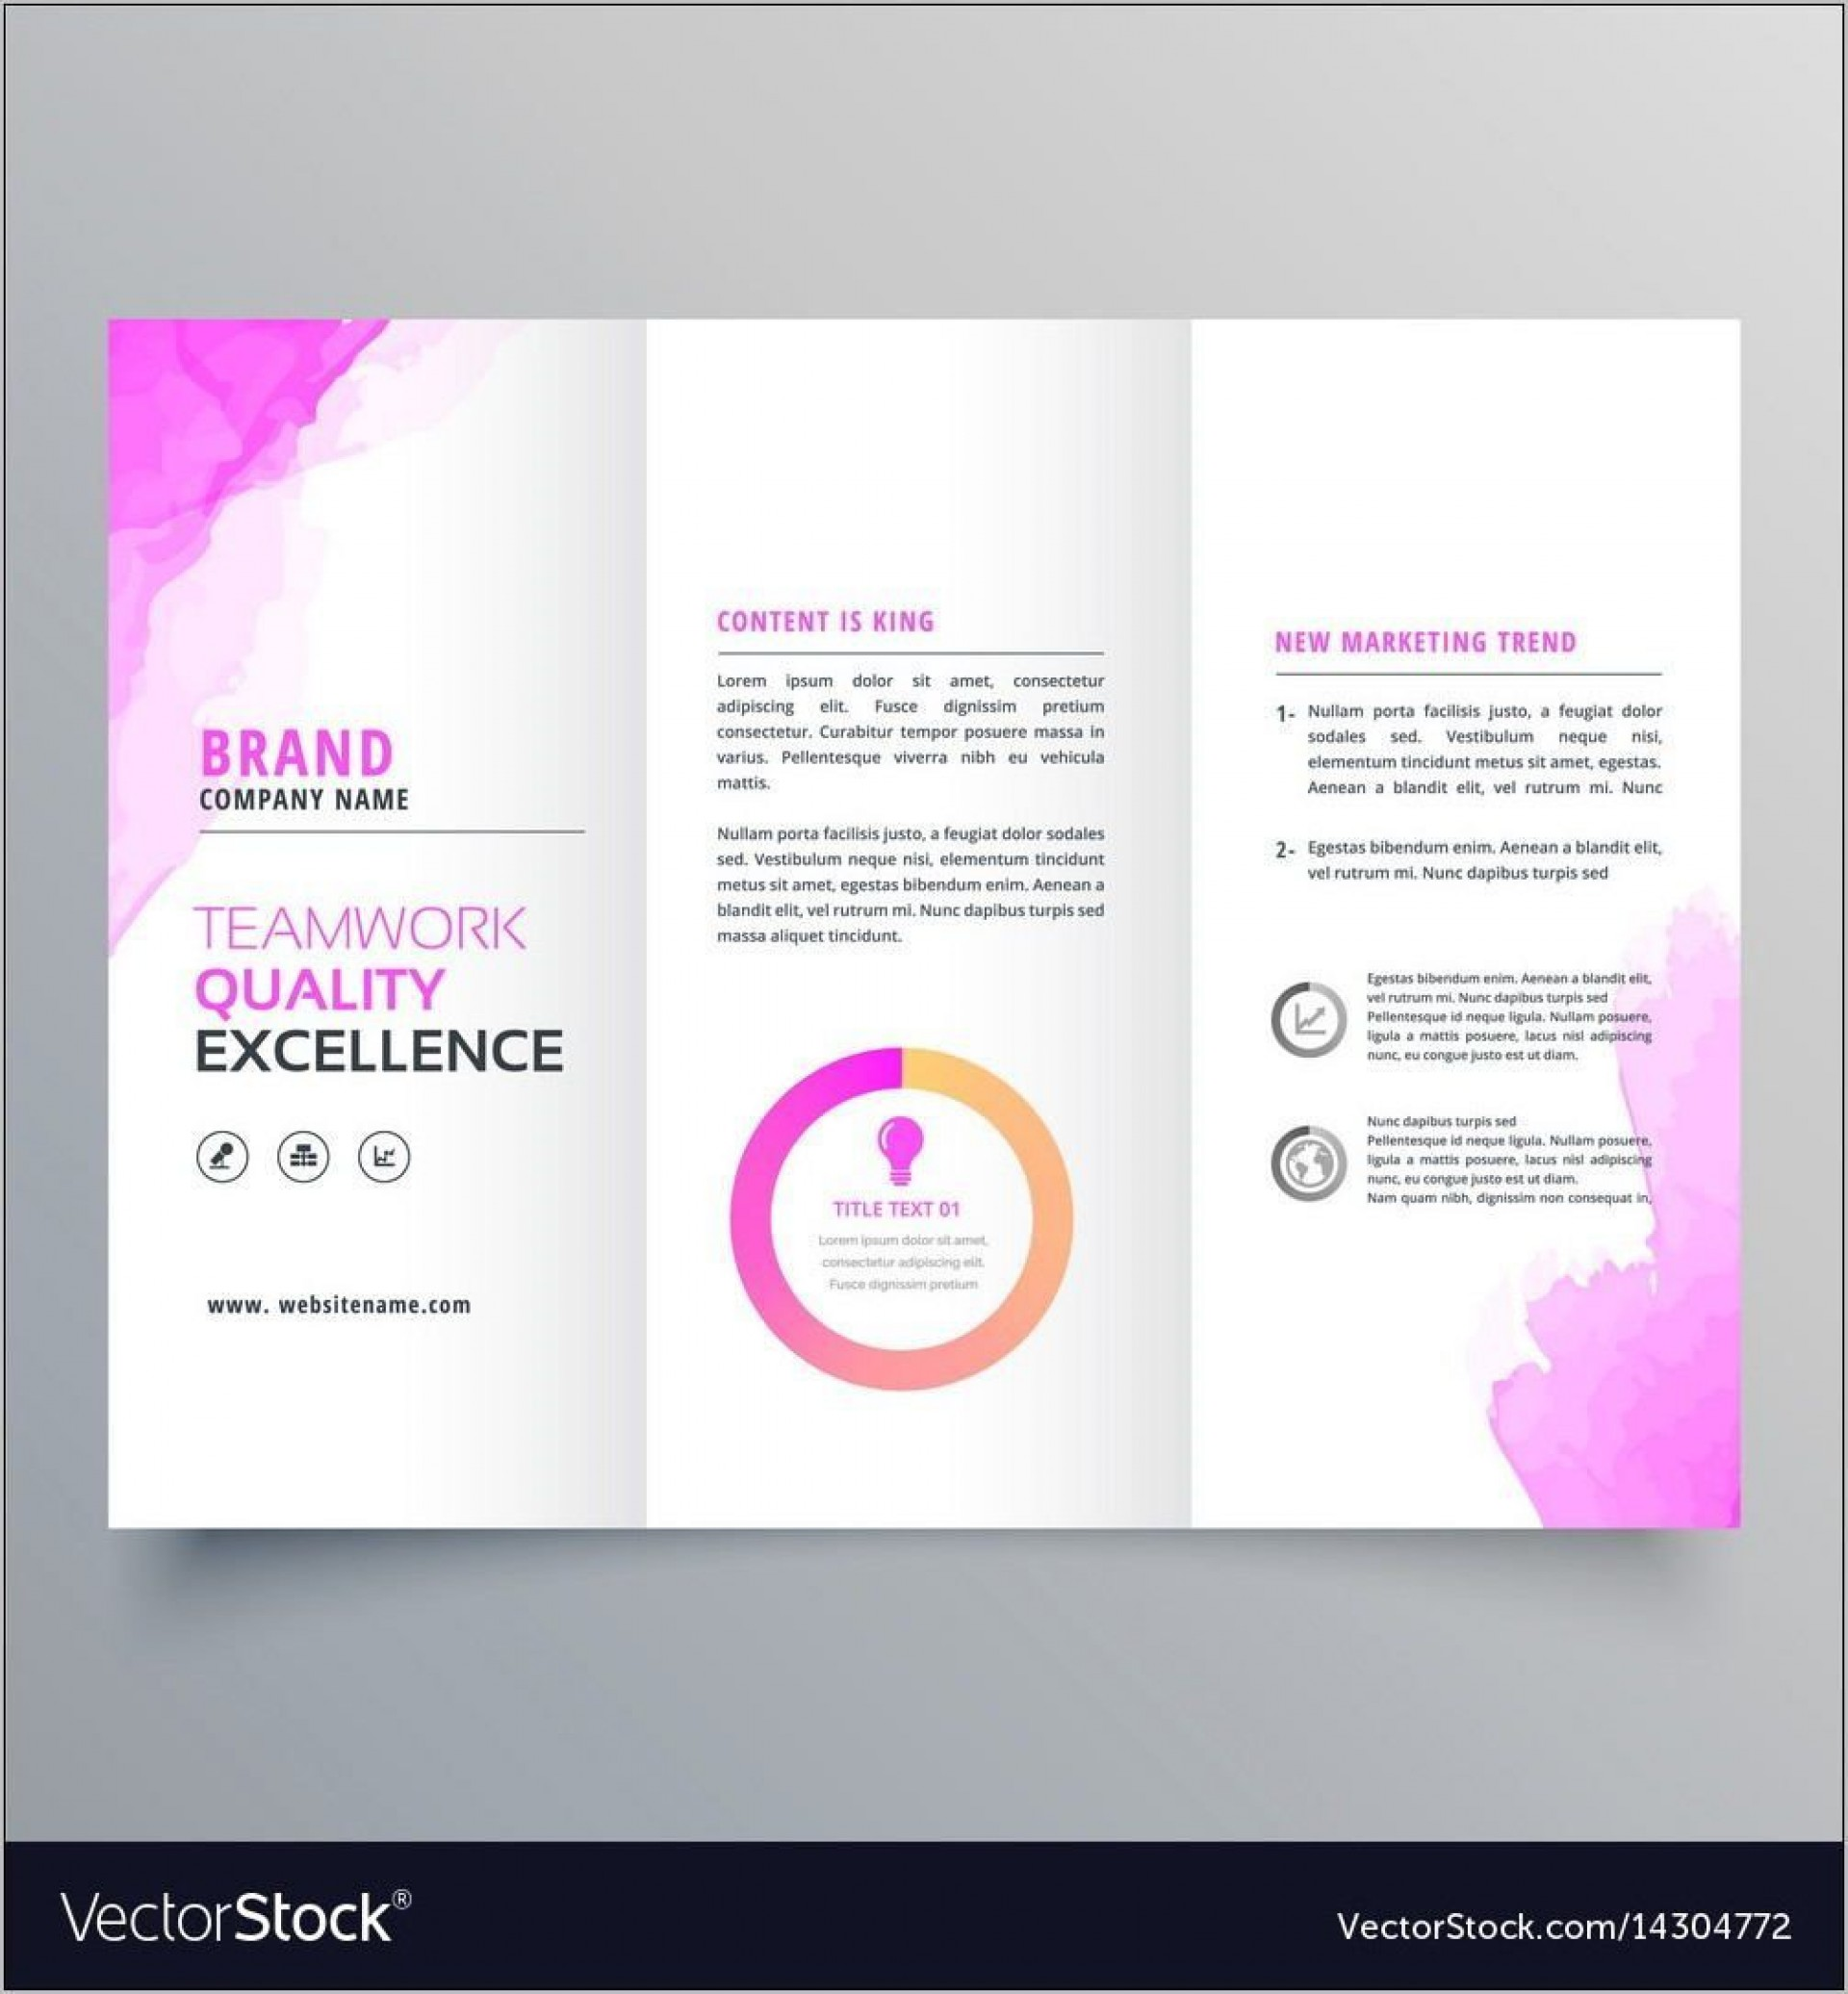 000 Striking Download Brochure Template For Word 2007 Photo 1920